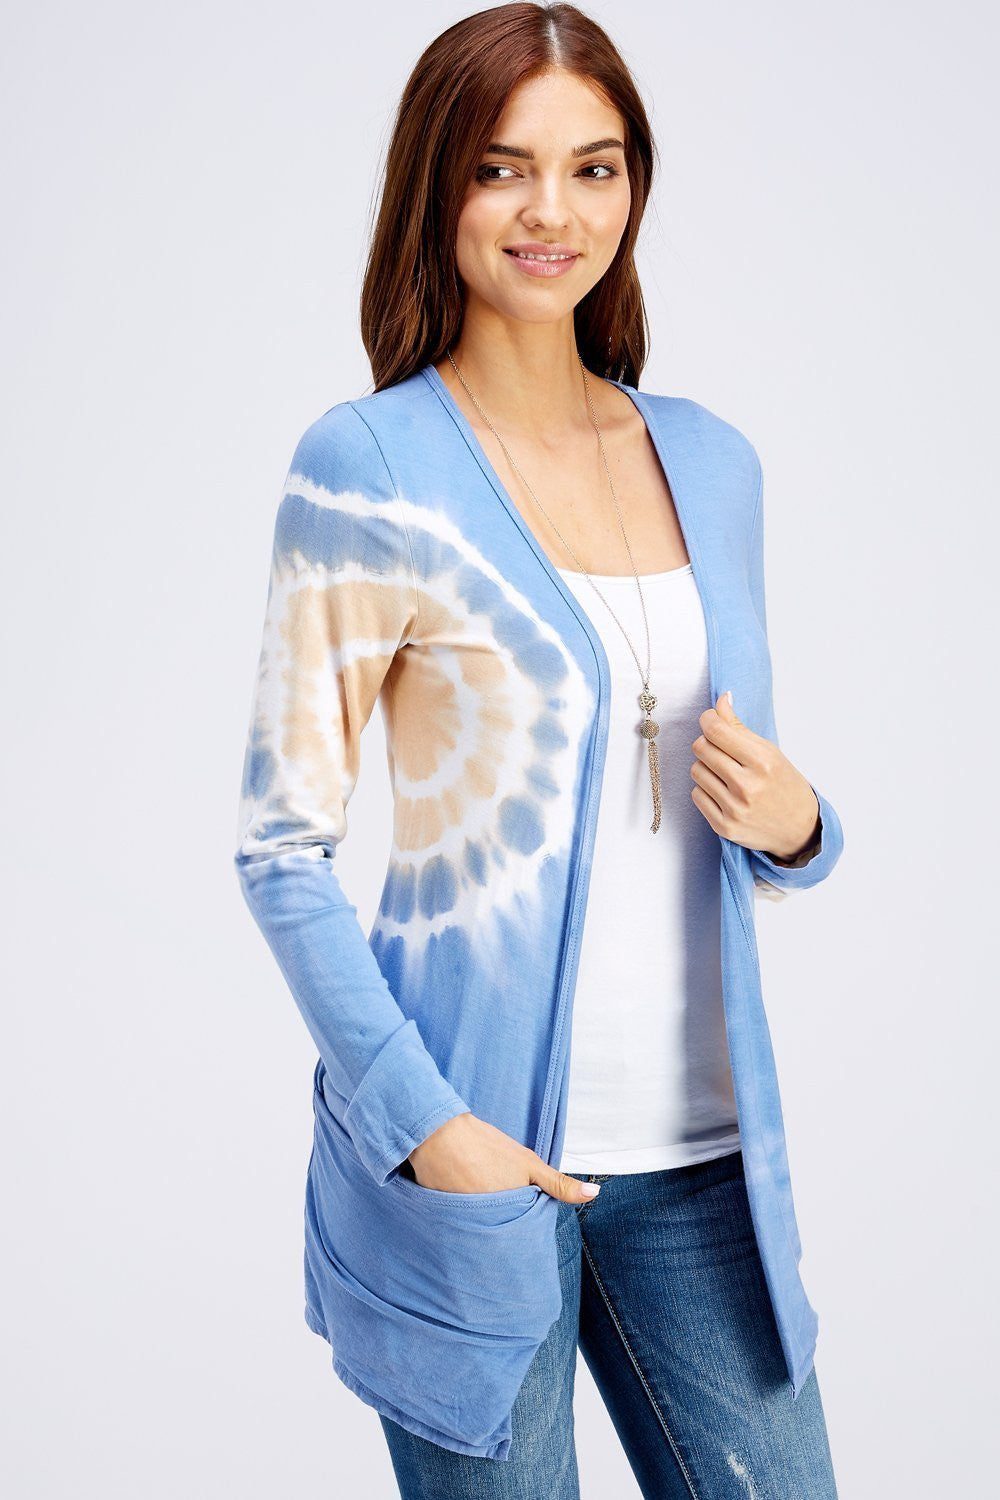 Wholesale Clothing, Online Wholesale Clothing, Women Clothing, Bohemian, Free People, tiedye, specialty wash, wholesale seller, wholesale women clothing shop, gypsy look, USA made, URBAN X APPAREL-CARDIGANS-UCR3187P, fashiontrend2019